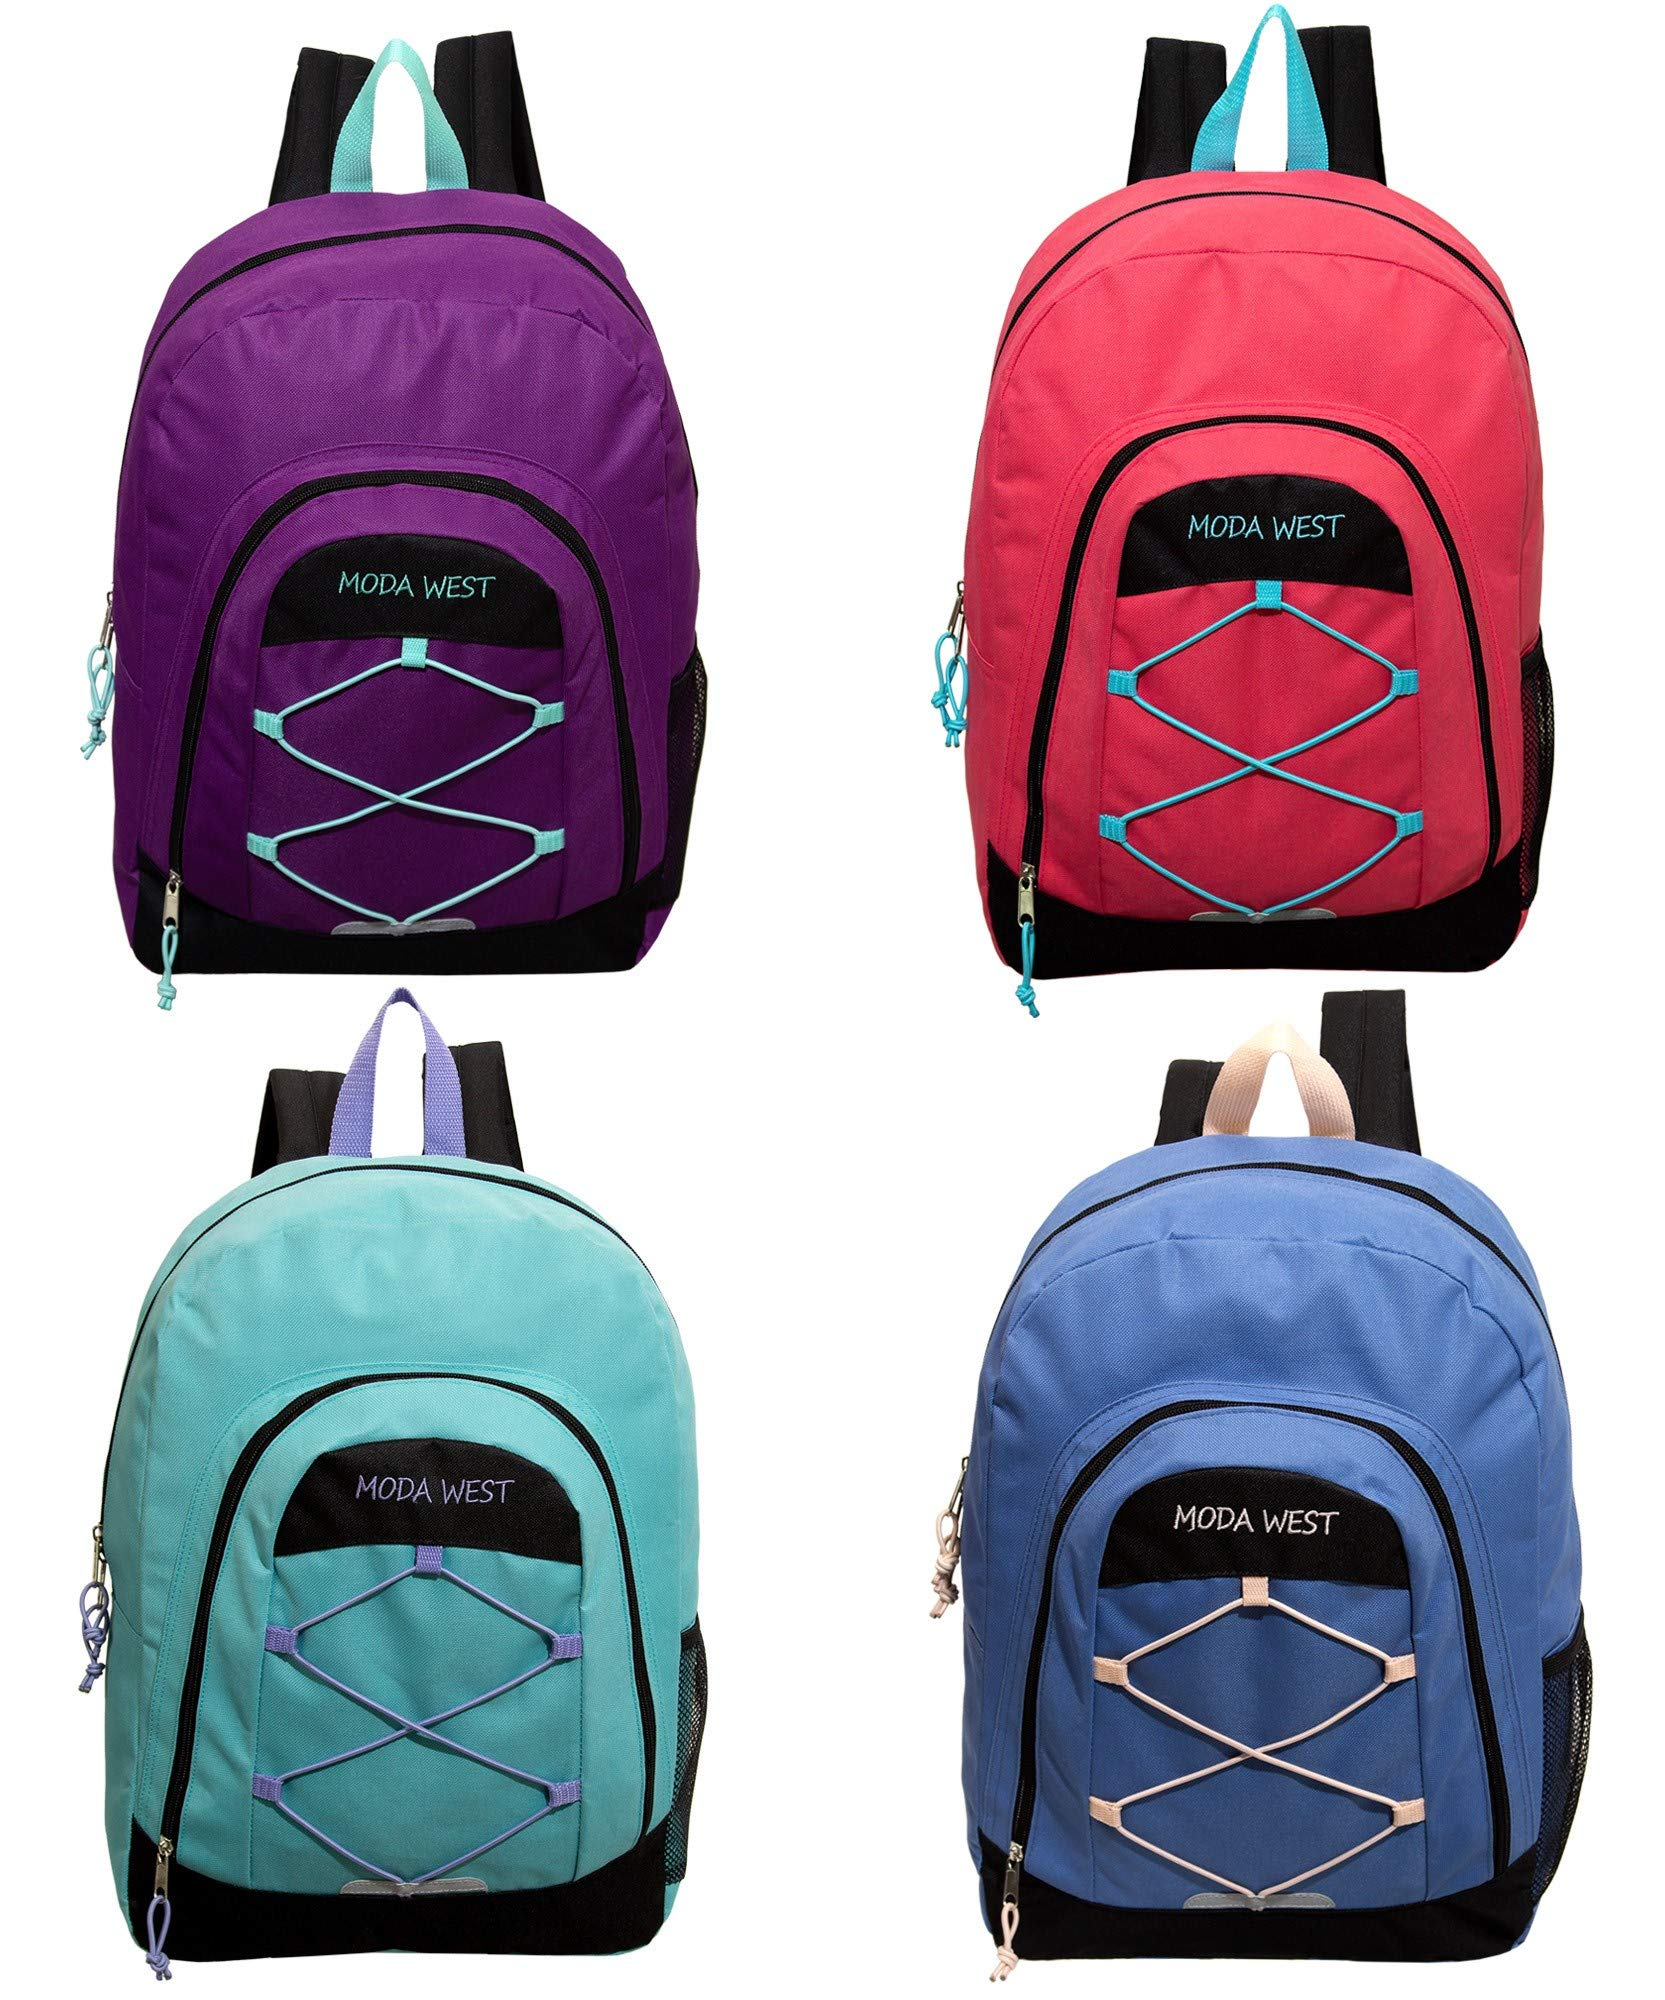 17 Inch Bulk Premium Bungee Sport Backpack in 4 Assorted Colors - Wholesale Case of 24 Bookbags by Moda West